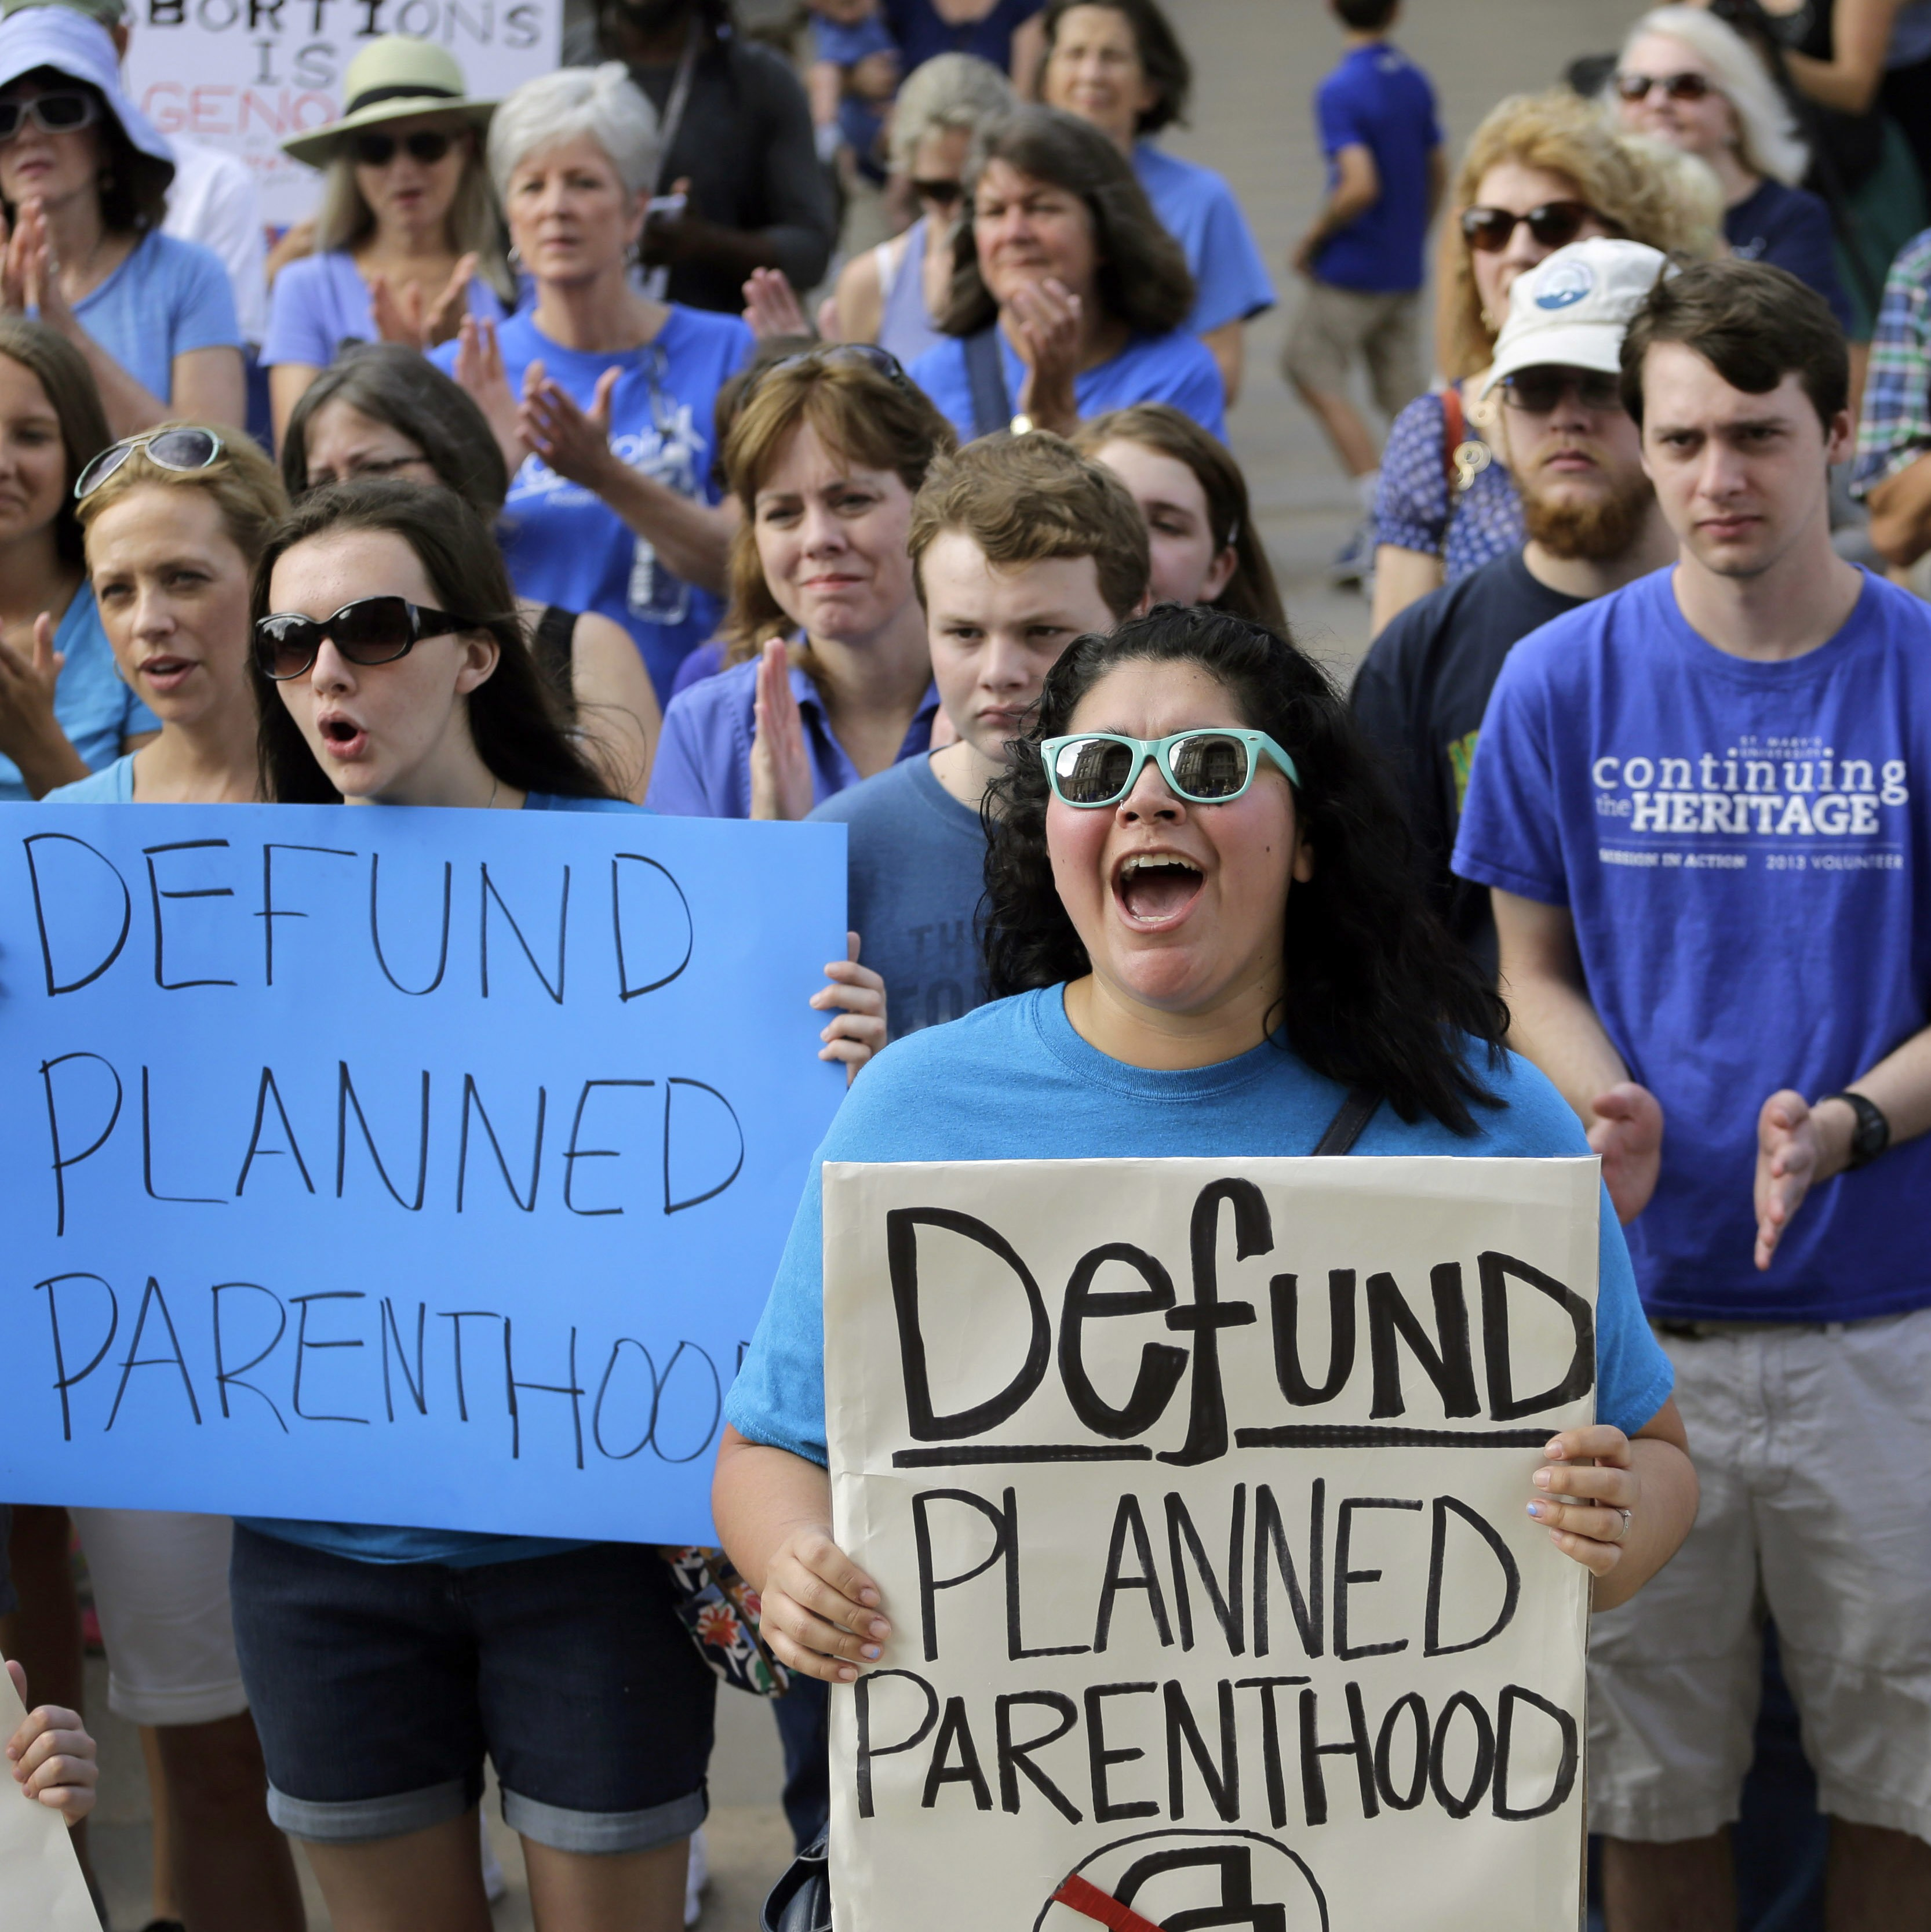 Witness Accounts Conflict With Planned Parenthood